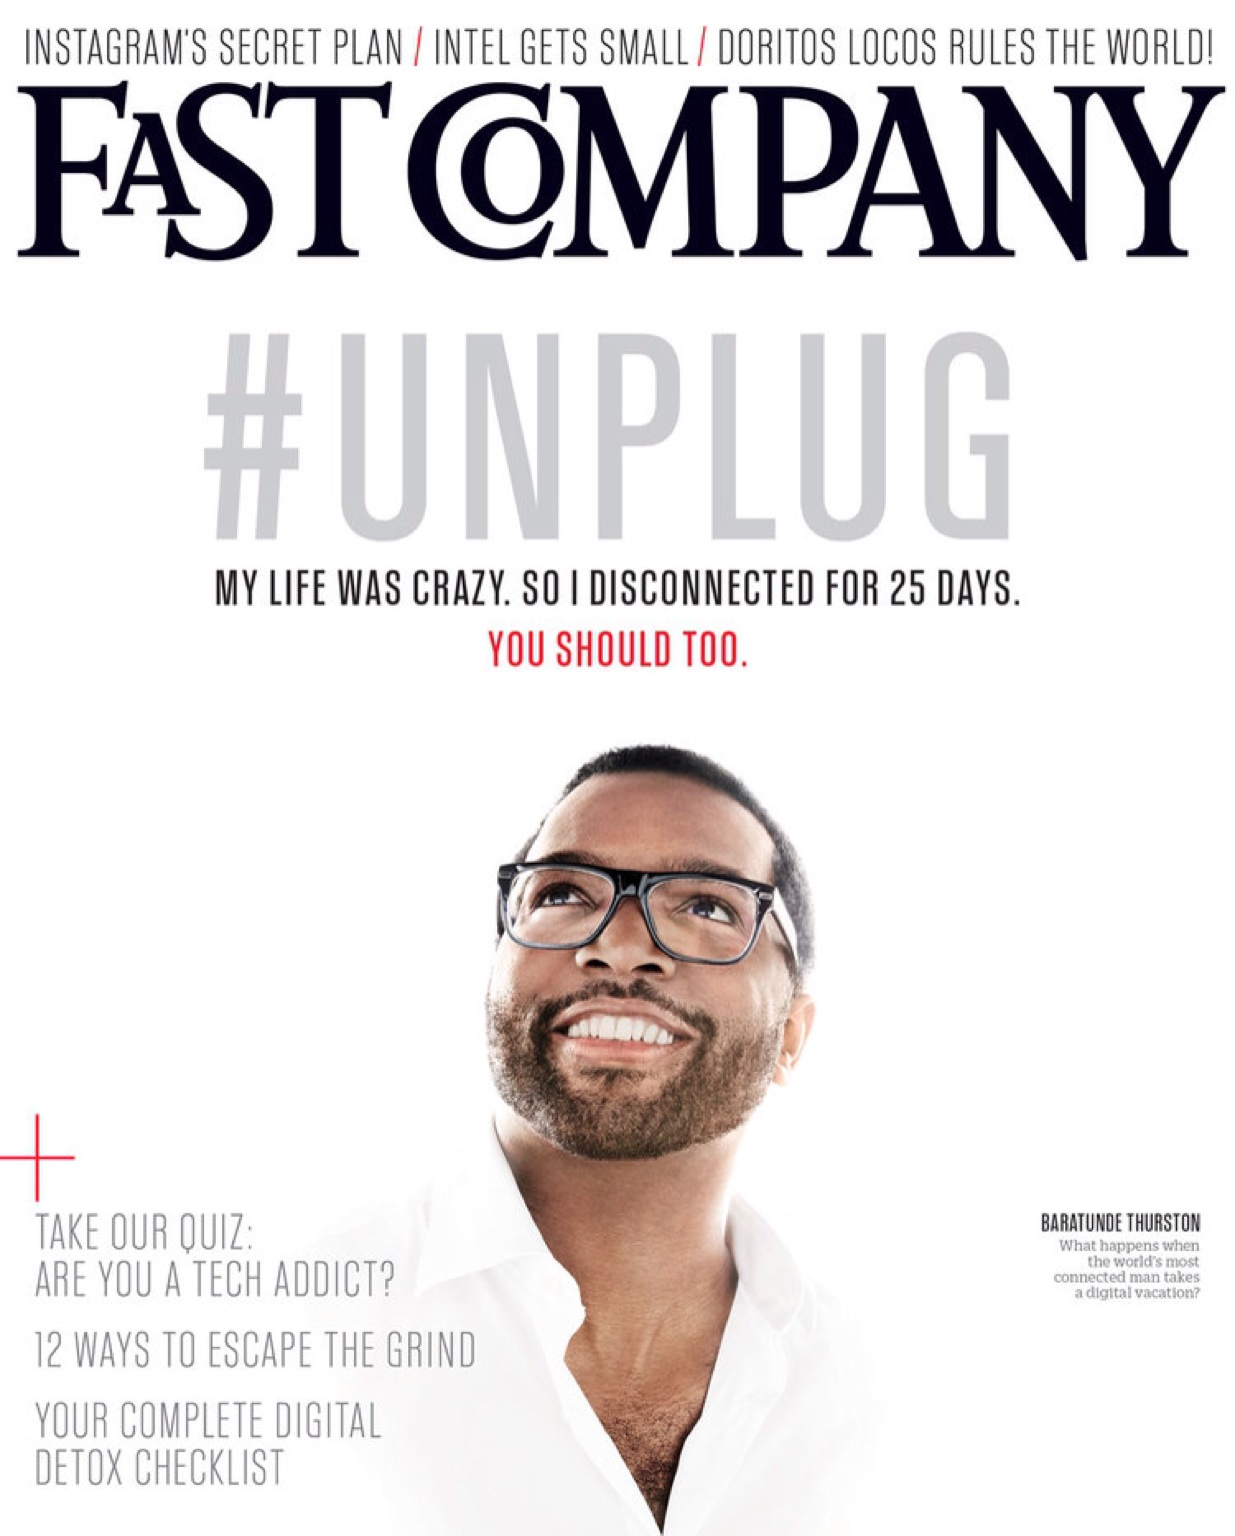 So this happened. #Unplug Http://baratunde.com – View on Path.